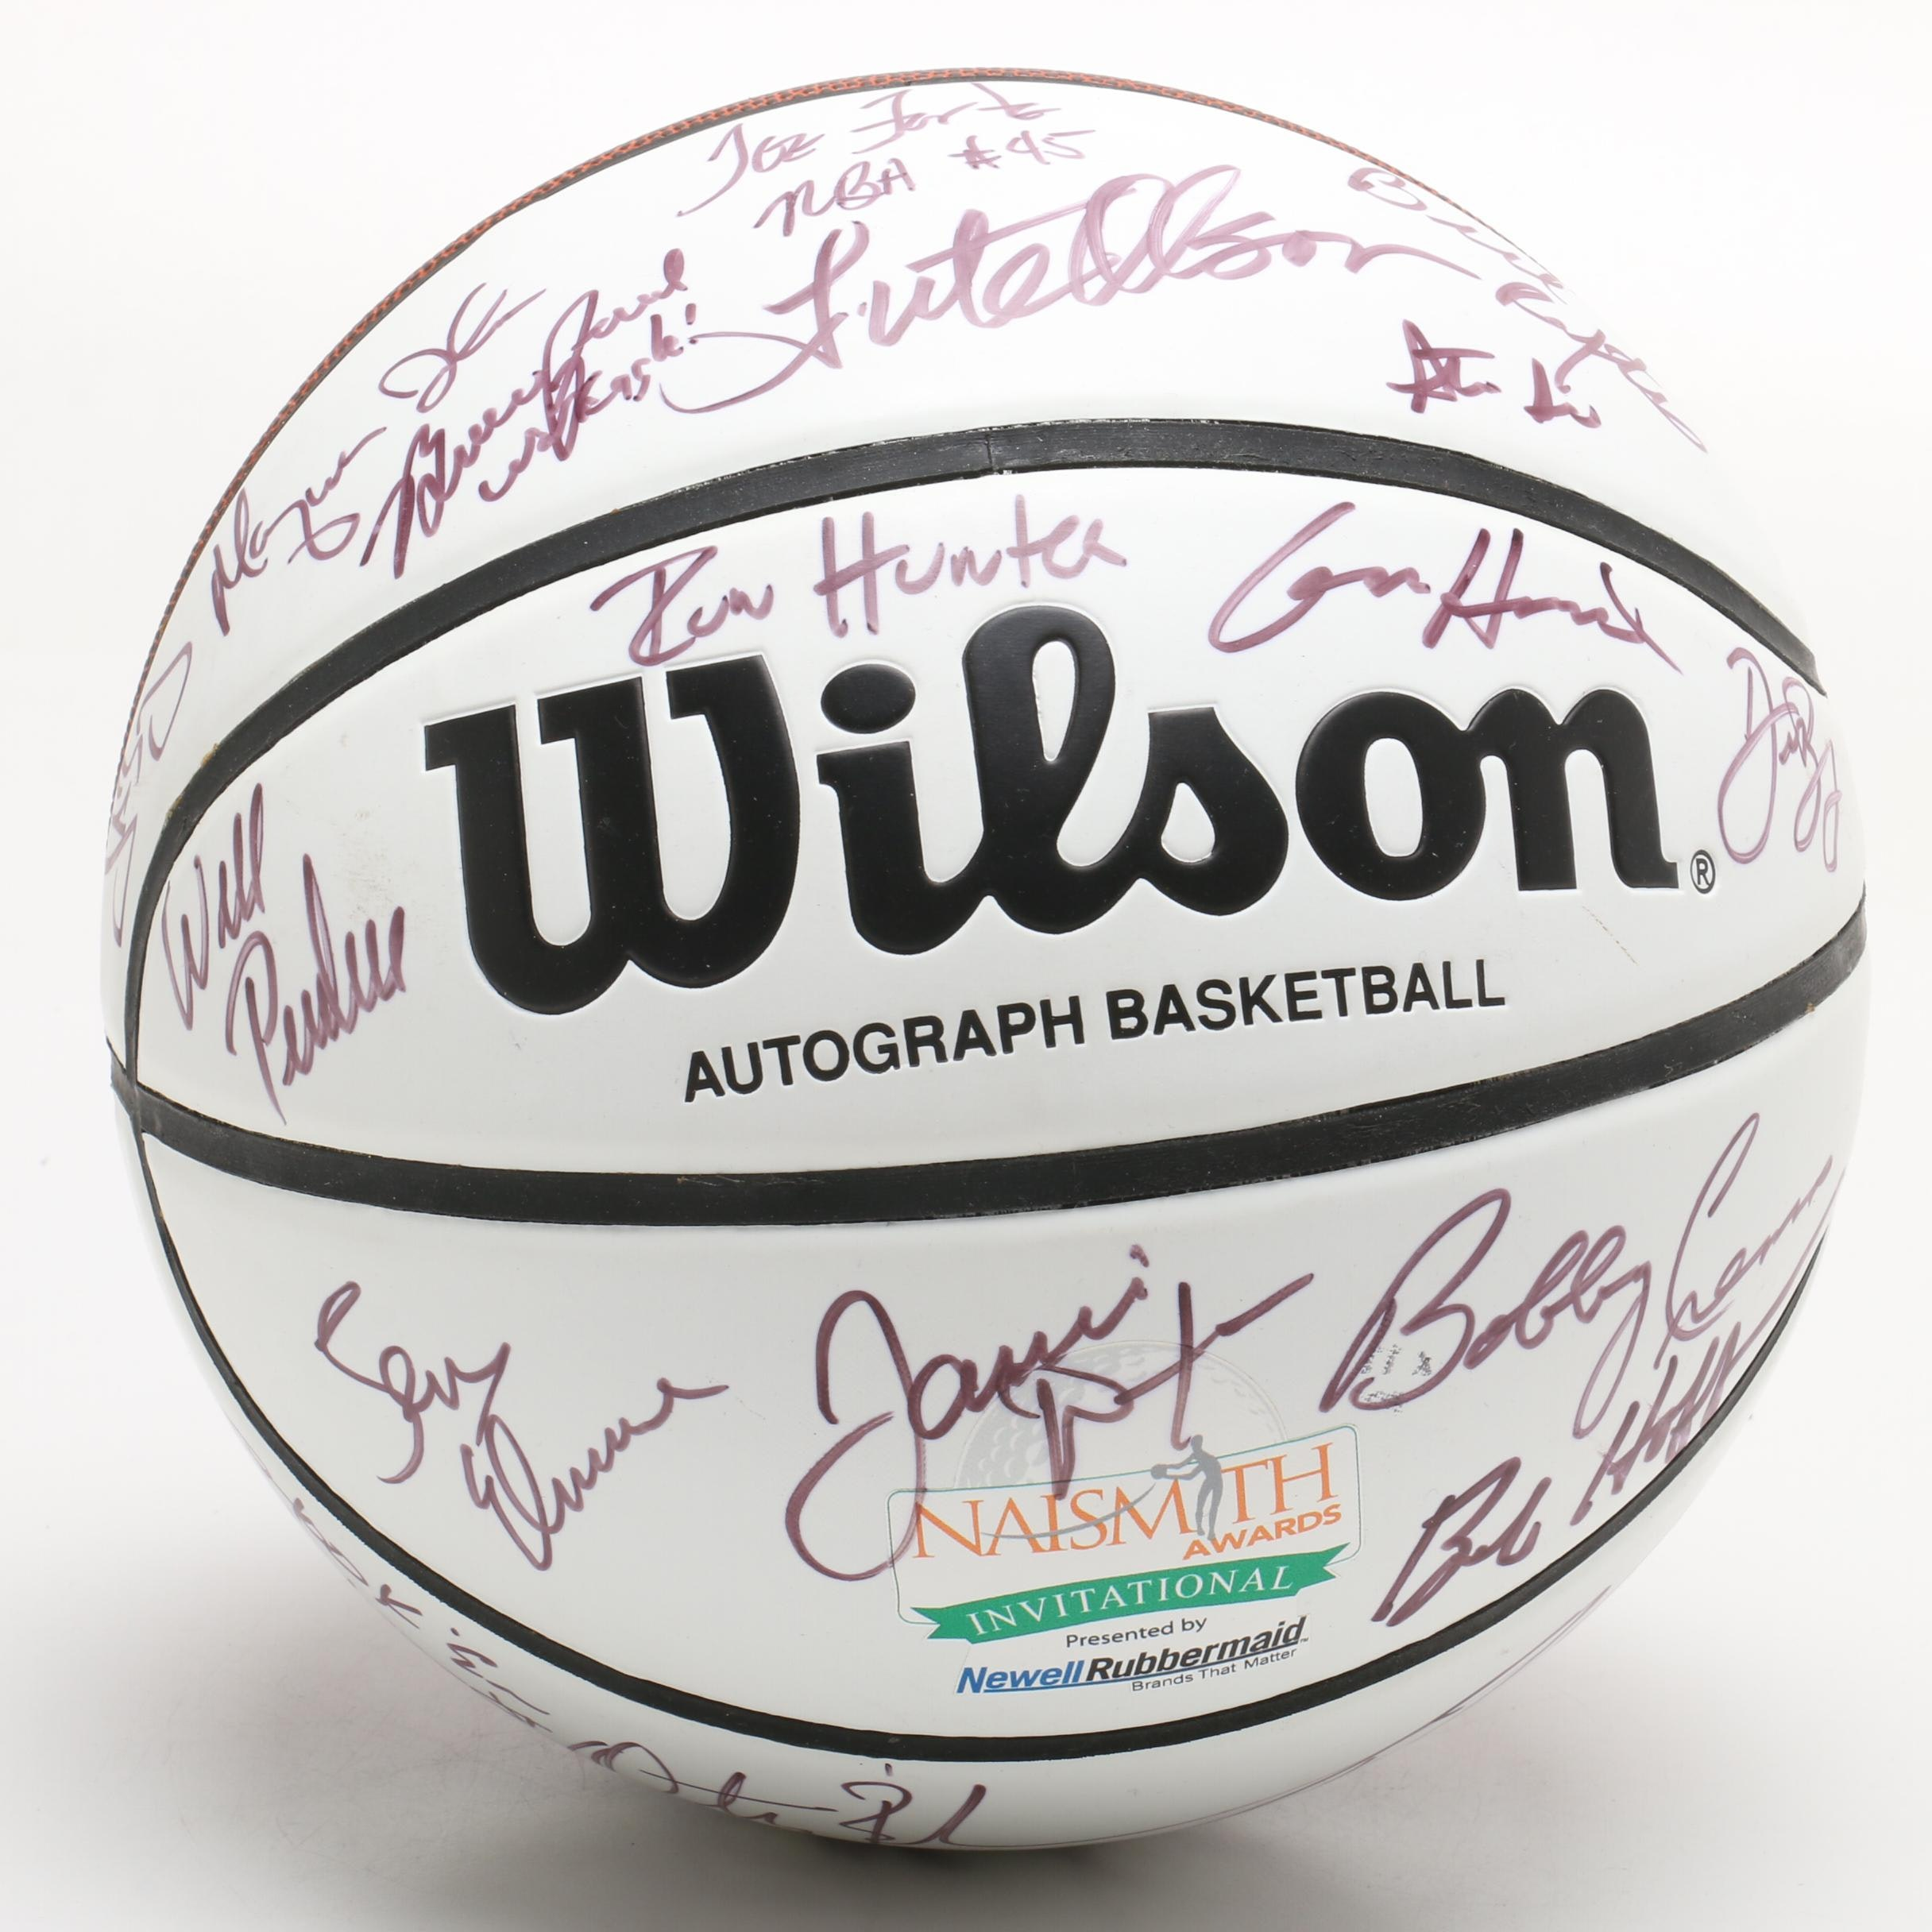 Autographed Wilson Basketball by Eighteen Past NCAA Naismith Award Winners